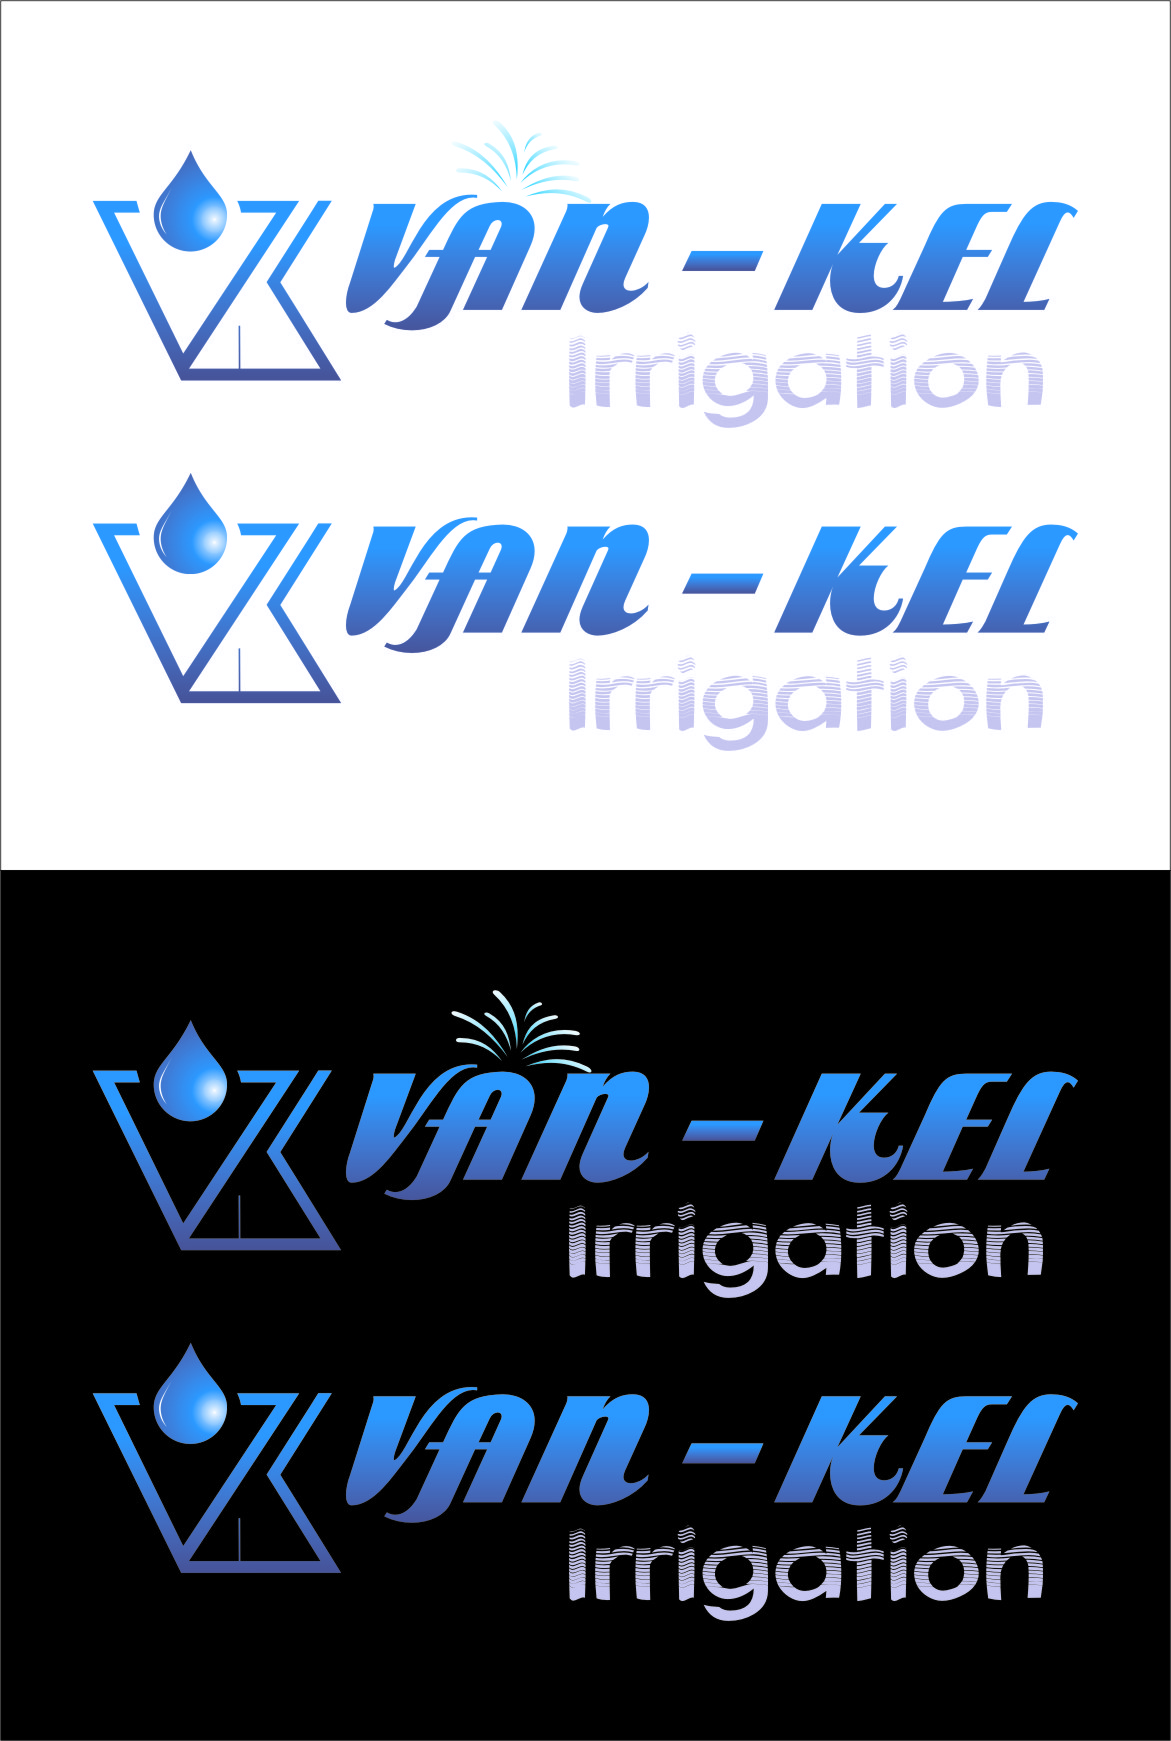 Logo Design by RasYa Muhammad Athaya - Entry No. 297 in the Logo Design Contest Van-Kel Irrigation Logo Design.